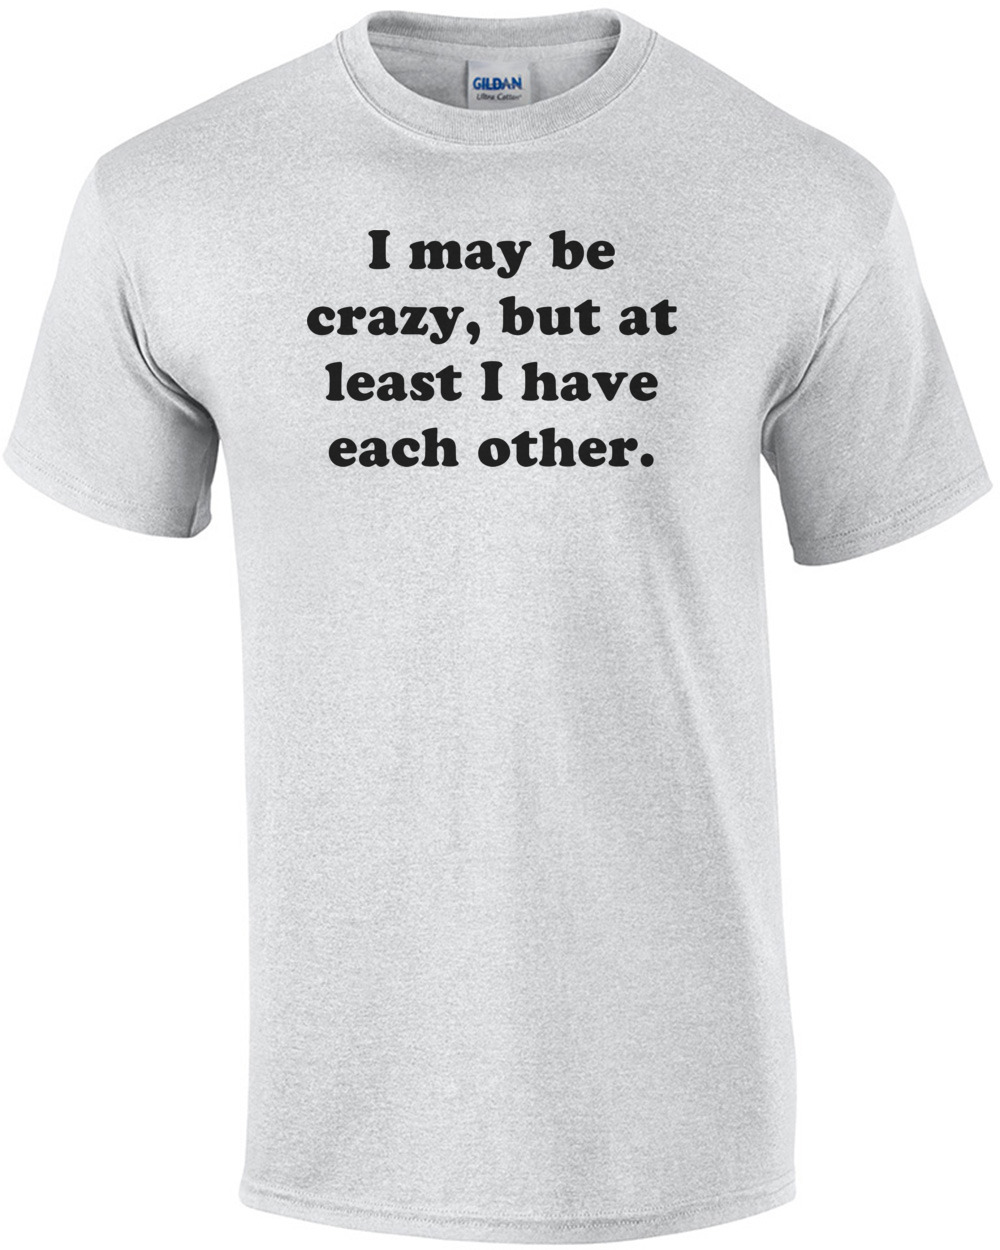 6d487fdcda I may be crazy, but at least I have each other. shirt